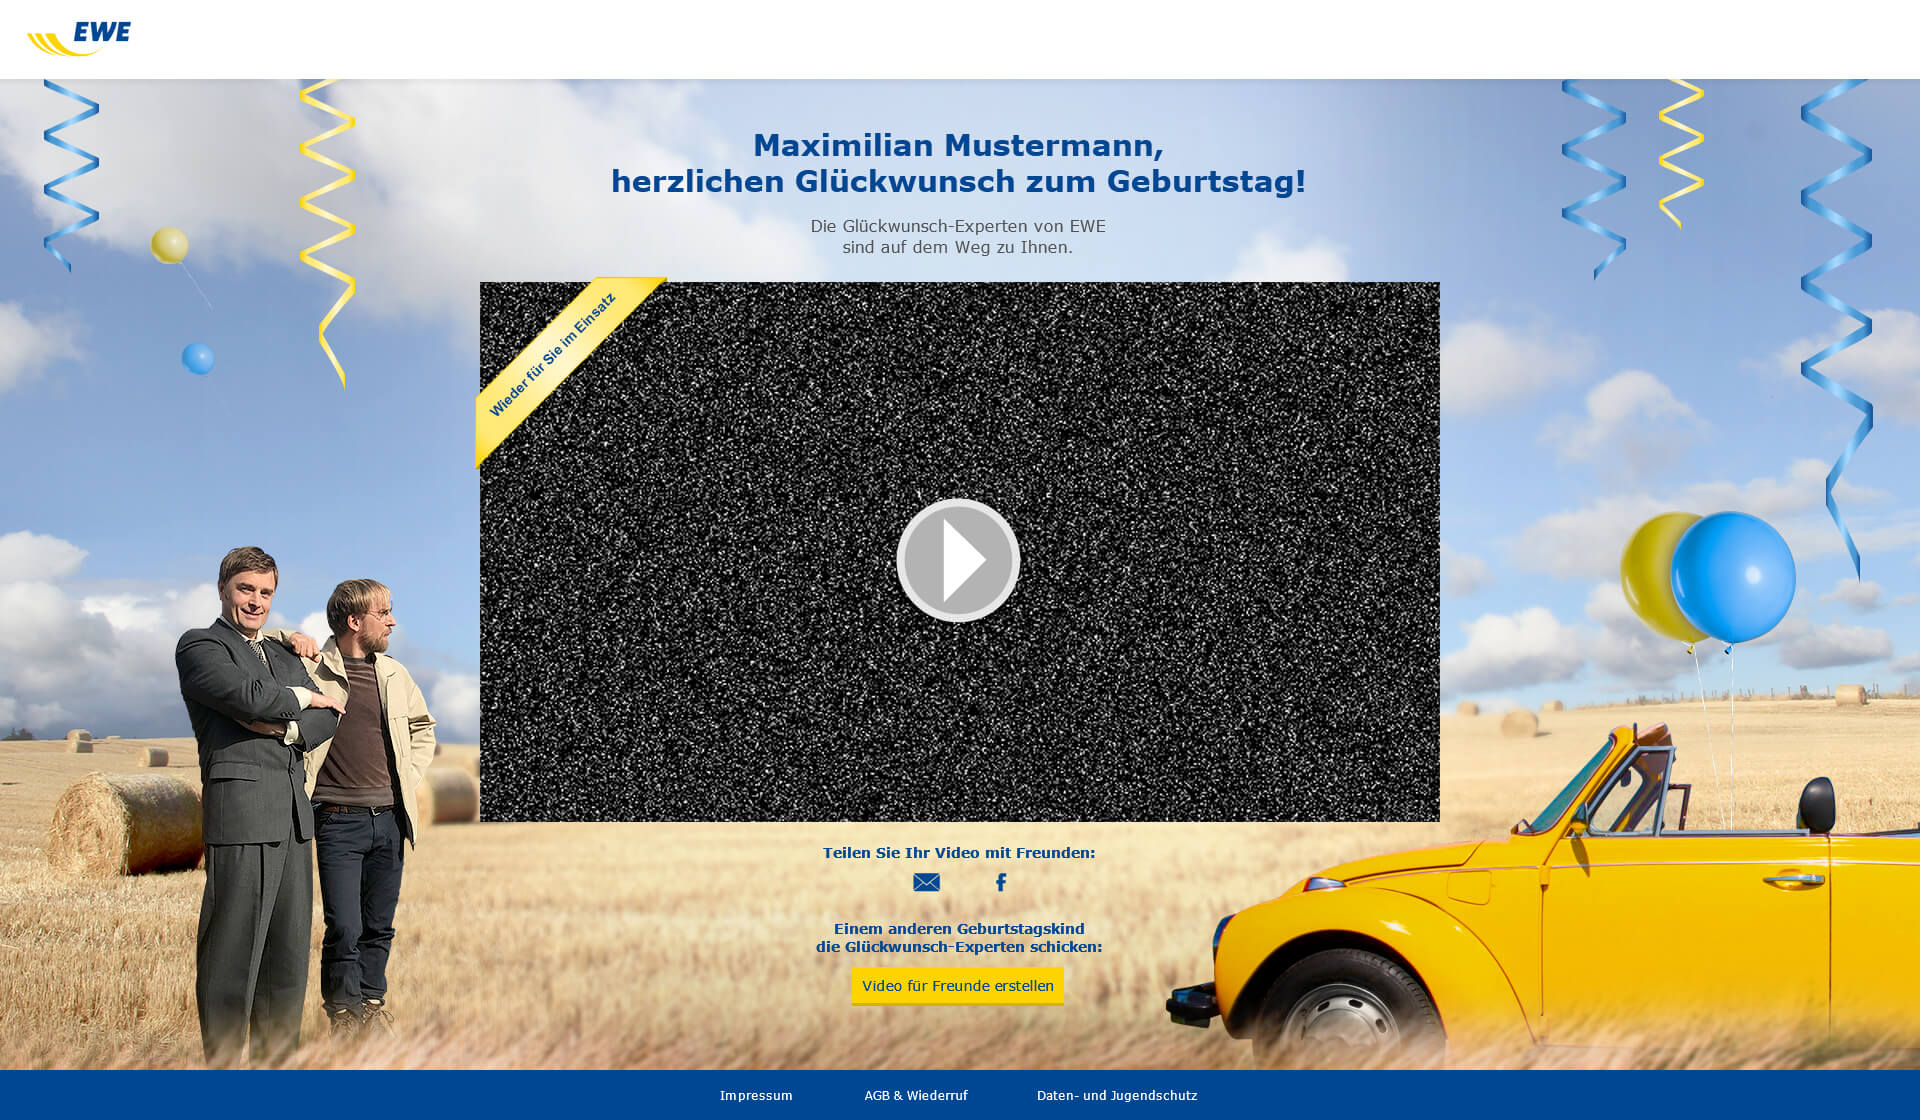 ewe-geburtstagsvideo-2018-website-desktop